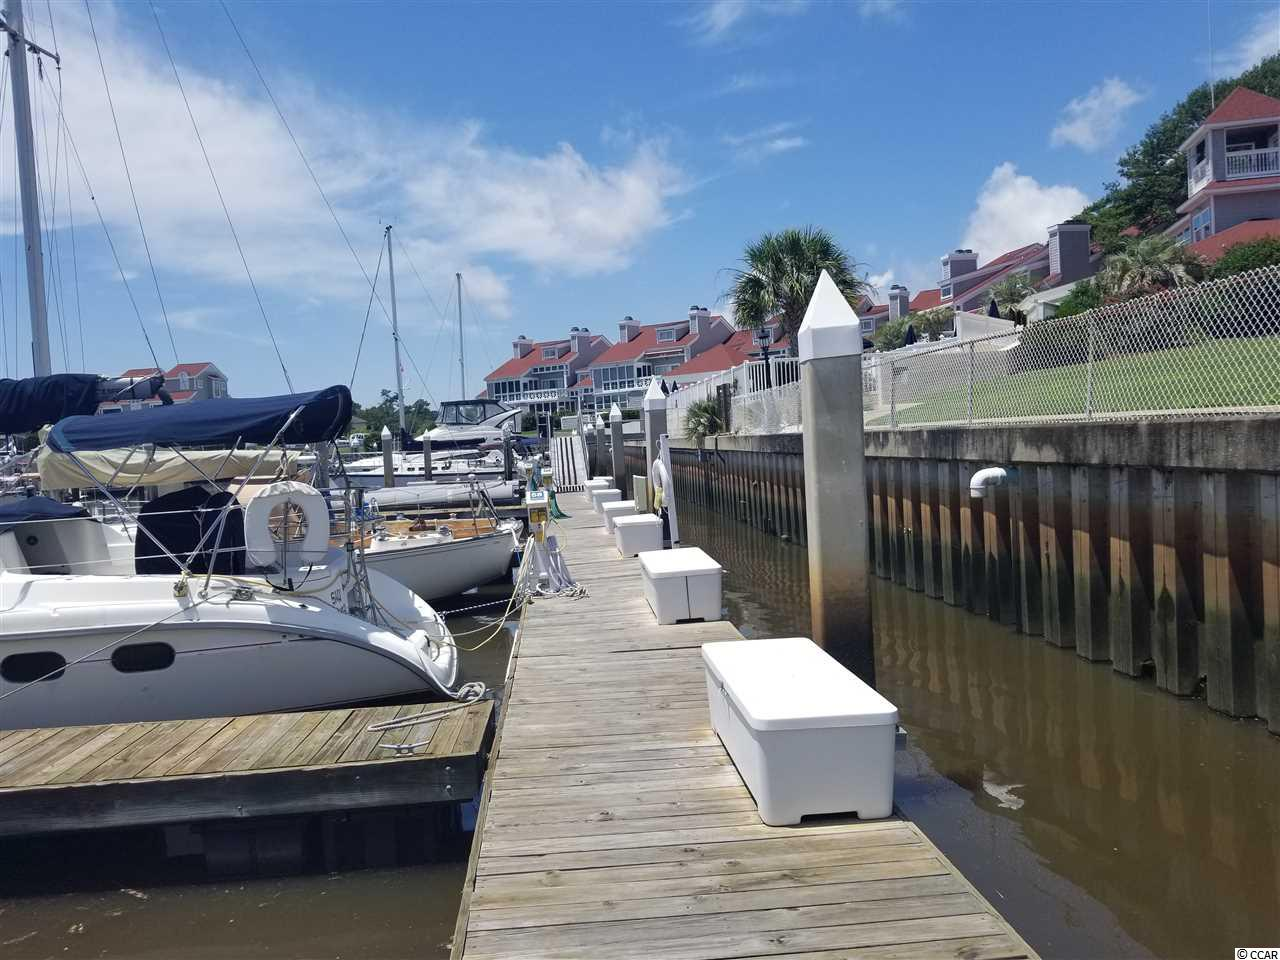 Closest 35' slip to the Little River Inlet! Floating docks with dock locker, electricity, and water at the slip. Ammenities include clubhouse with licensed bar open 5 days per week, showers, year round pool and spa, etc. Slip 108 is located in protected area with convenient parking, gated community with secured docks.